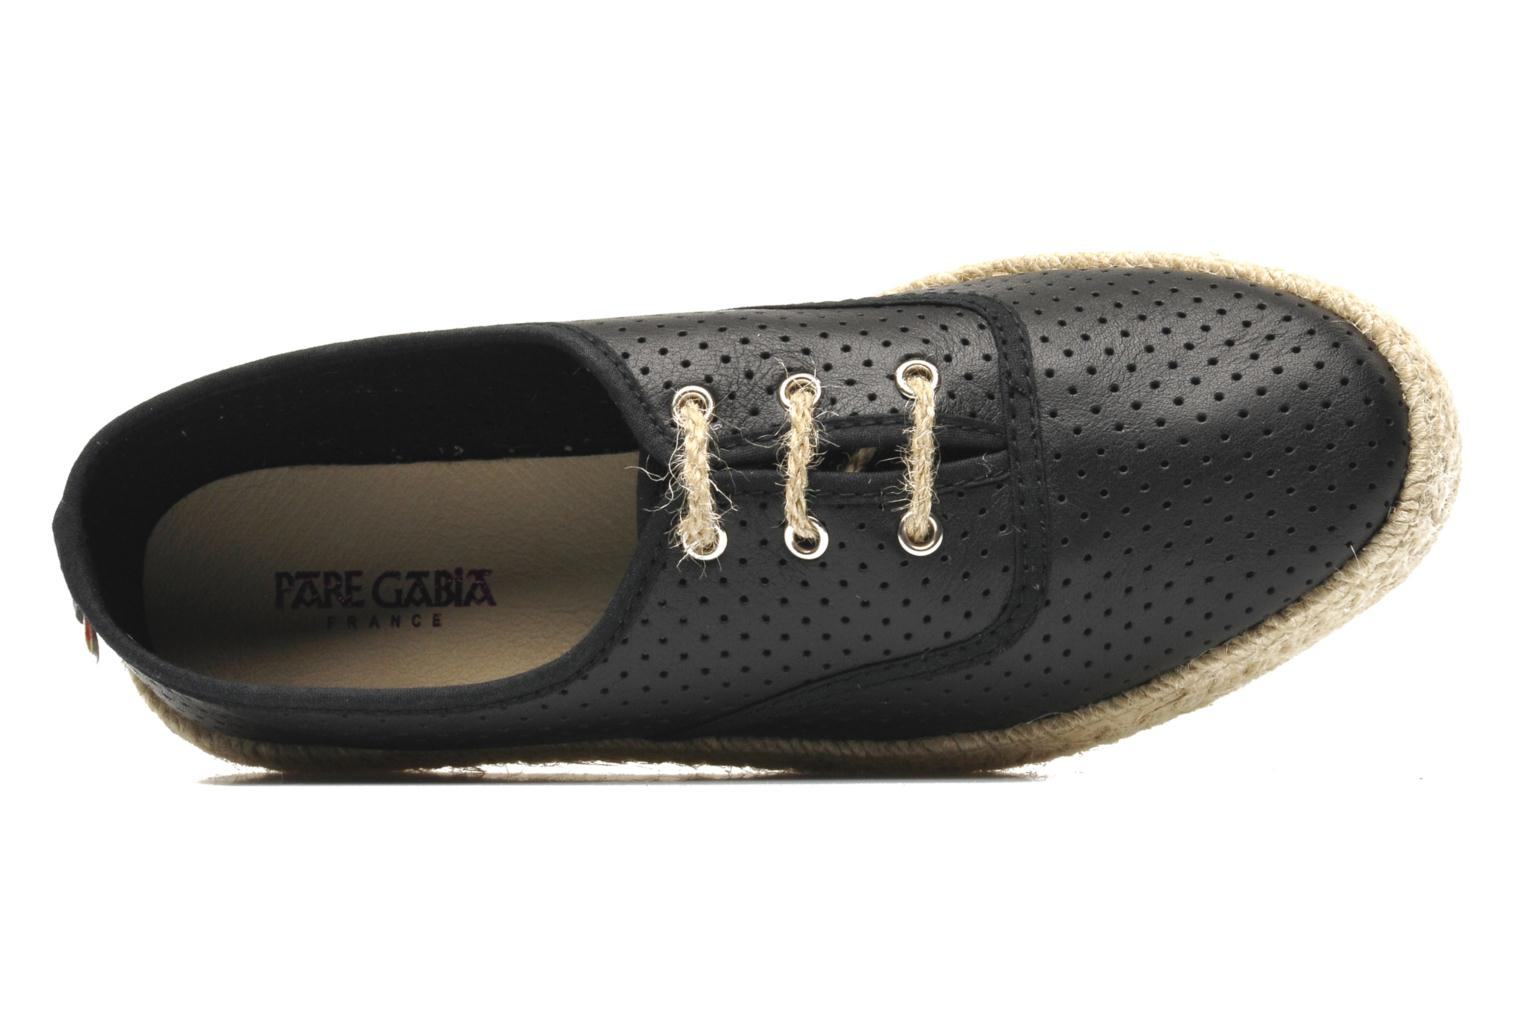 Lace-up shoes Pare Gabia Lotus cuir Black view from the left